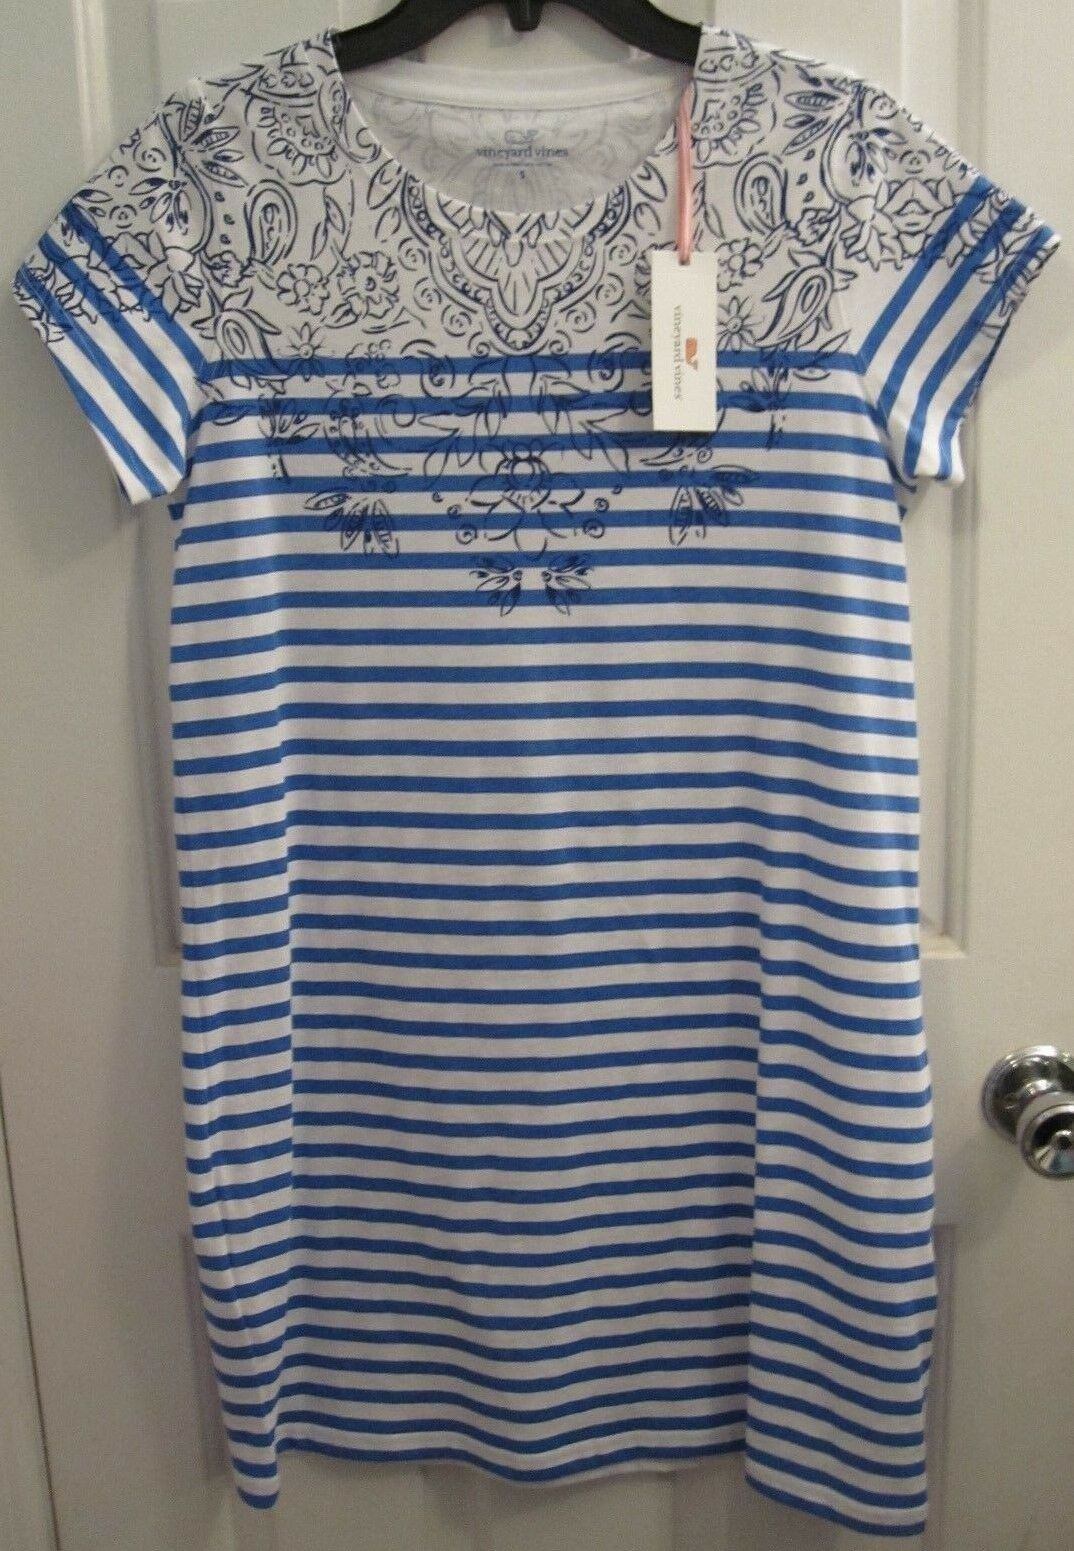 Vineyard Vines Women's S S Tee Dress in Striped Scarf Tide bluee -Size S -NWT